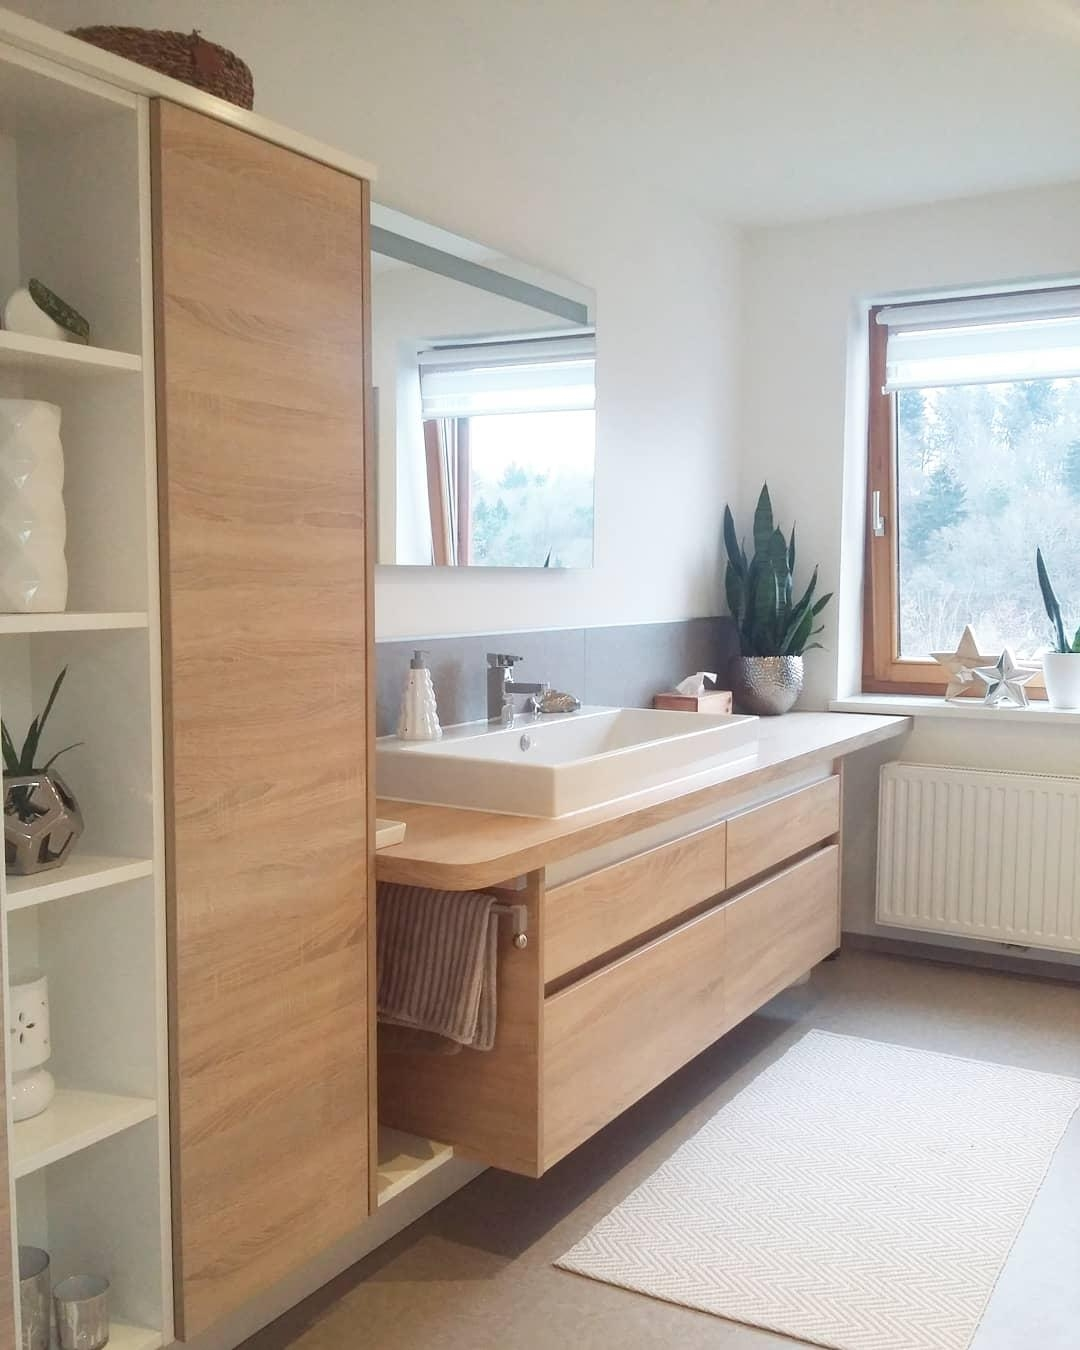 Badezimmer waschtisch holz eiche betonoptik bathroominspo bathroom nordichome whiteandwood home scandi  43c6e91d 9423 4c9e 8e51 e750b6fee931